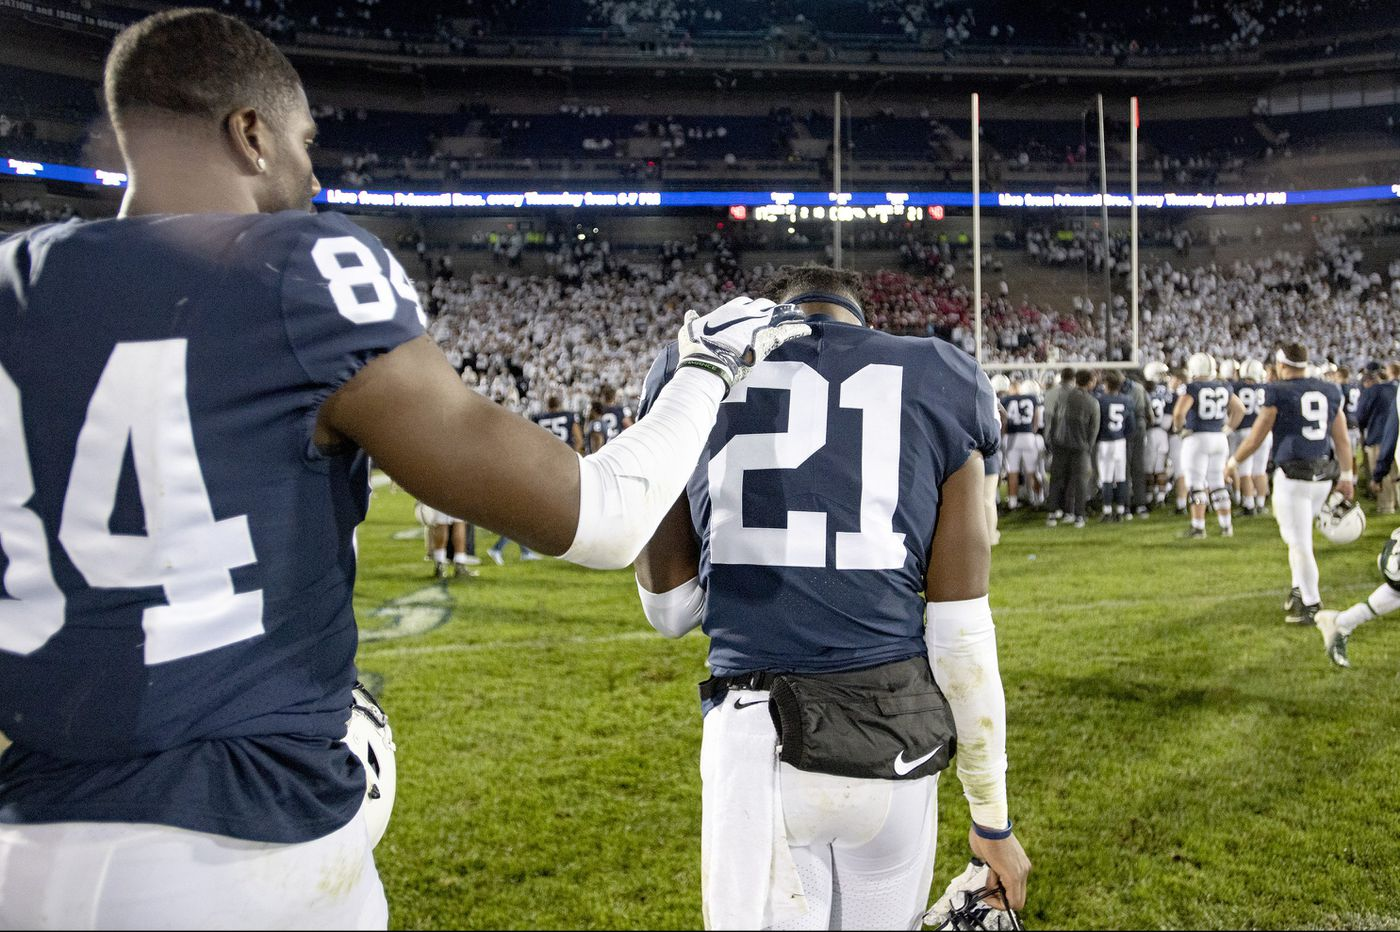 James Franklin wants to see Penn State cut down on mistakes